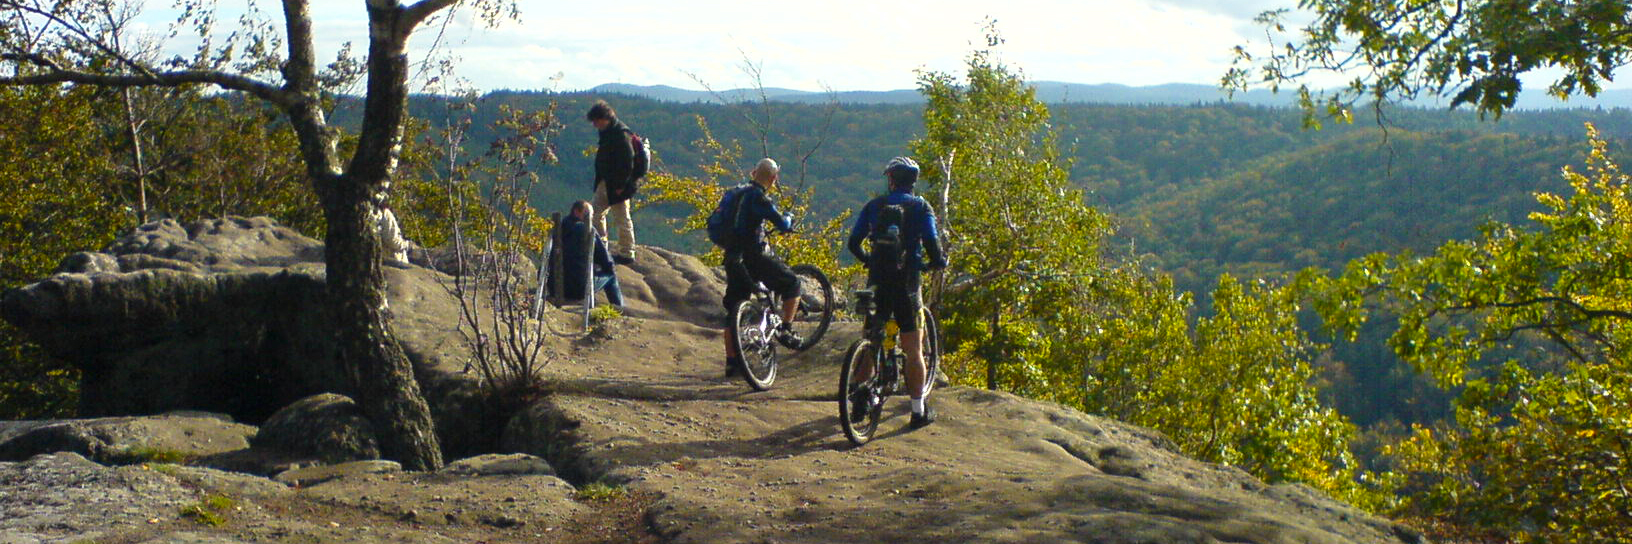 Mountain bike riders take in the views on the Durango Intermediate Singletrack guided tour